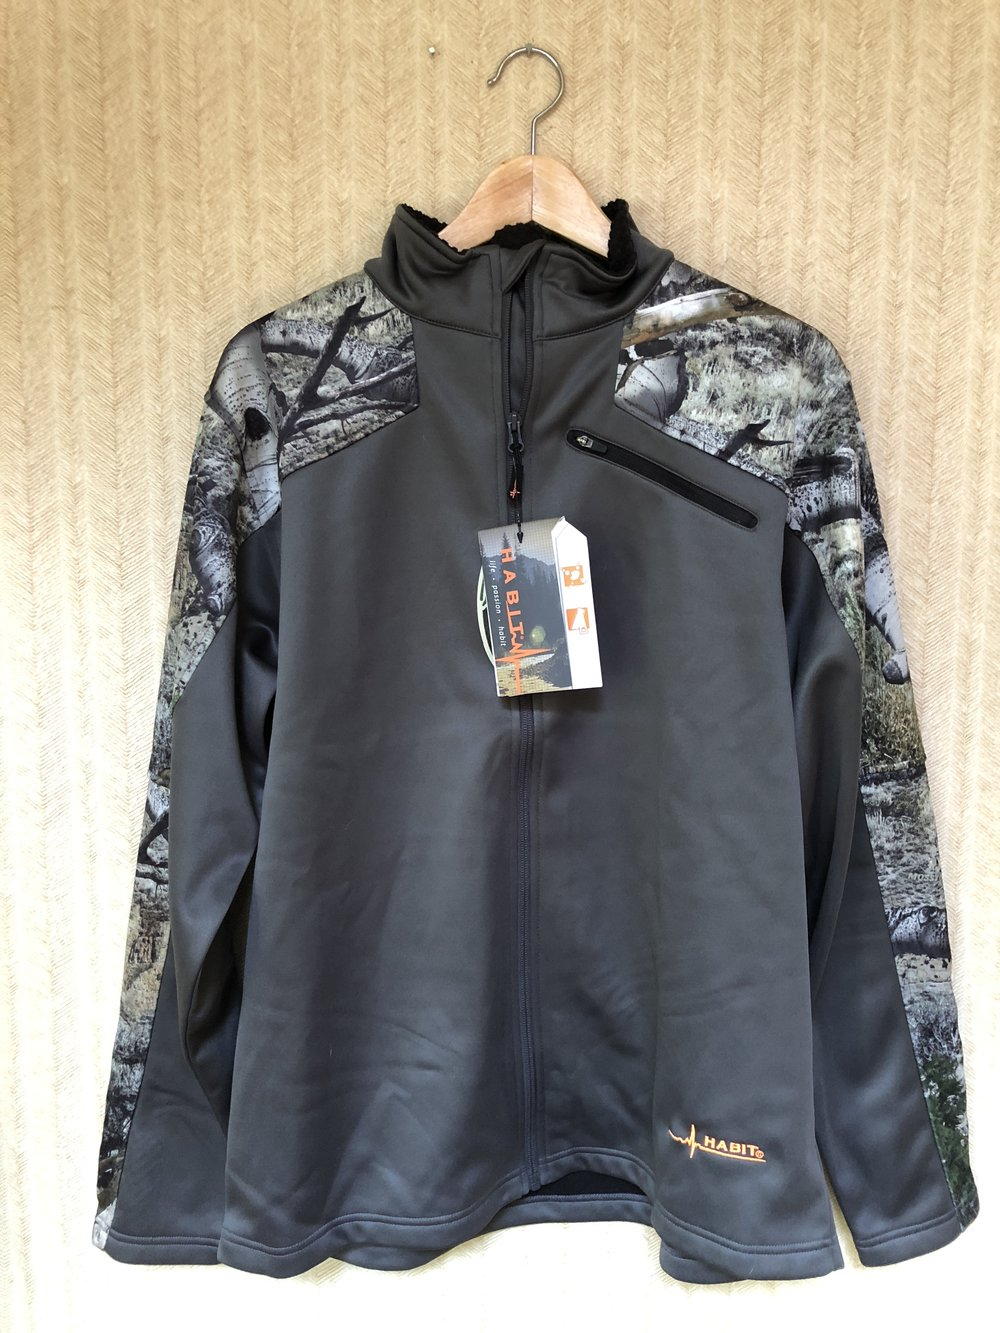 Mahco Inc - Habit Camo Jacket.JPG